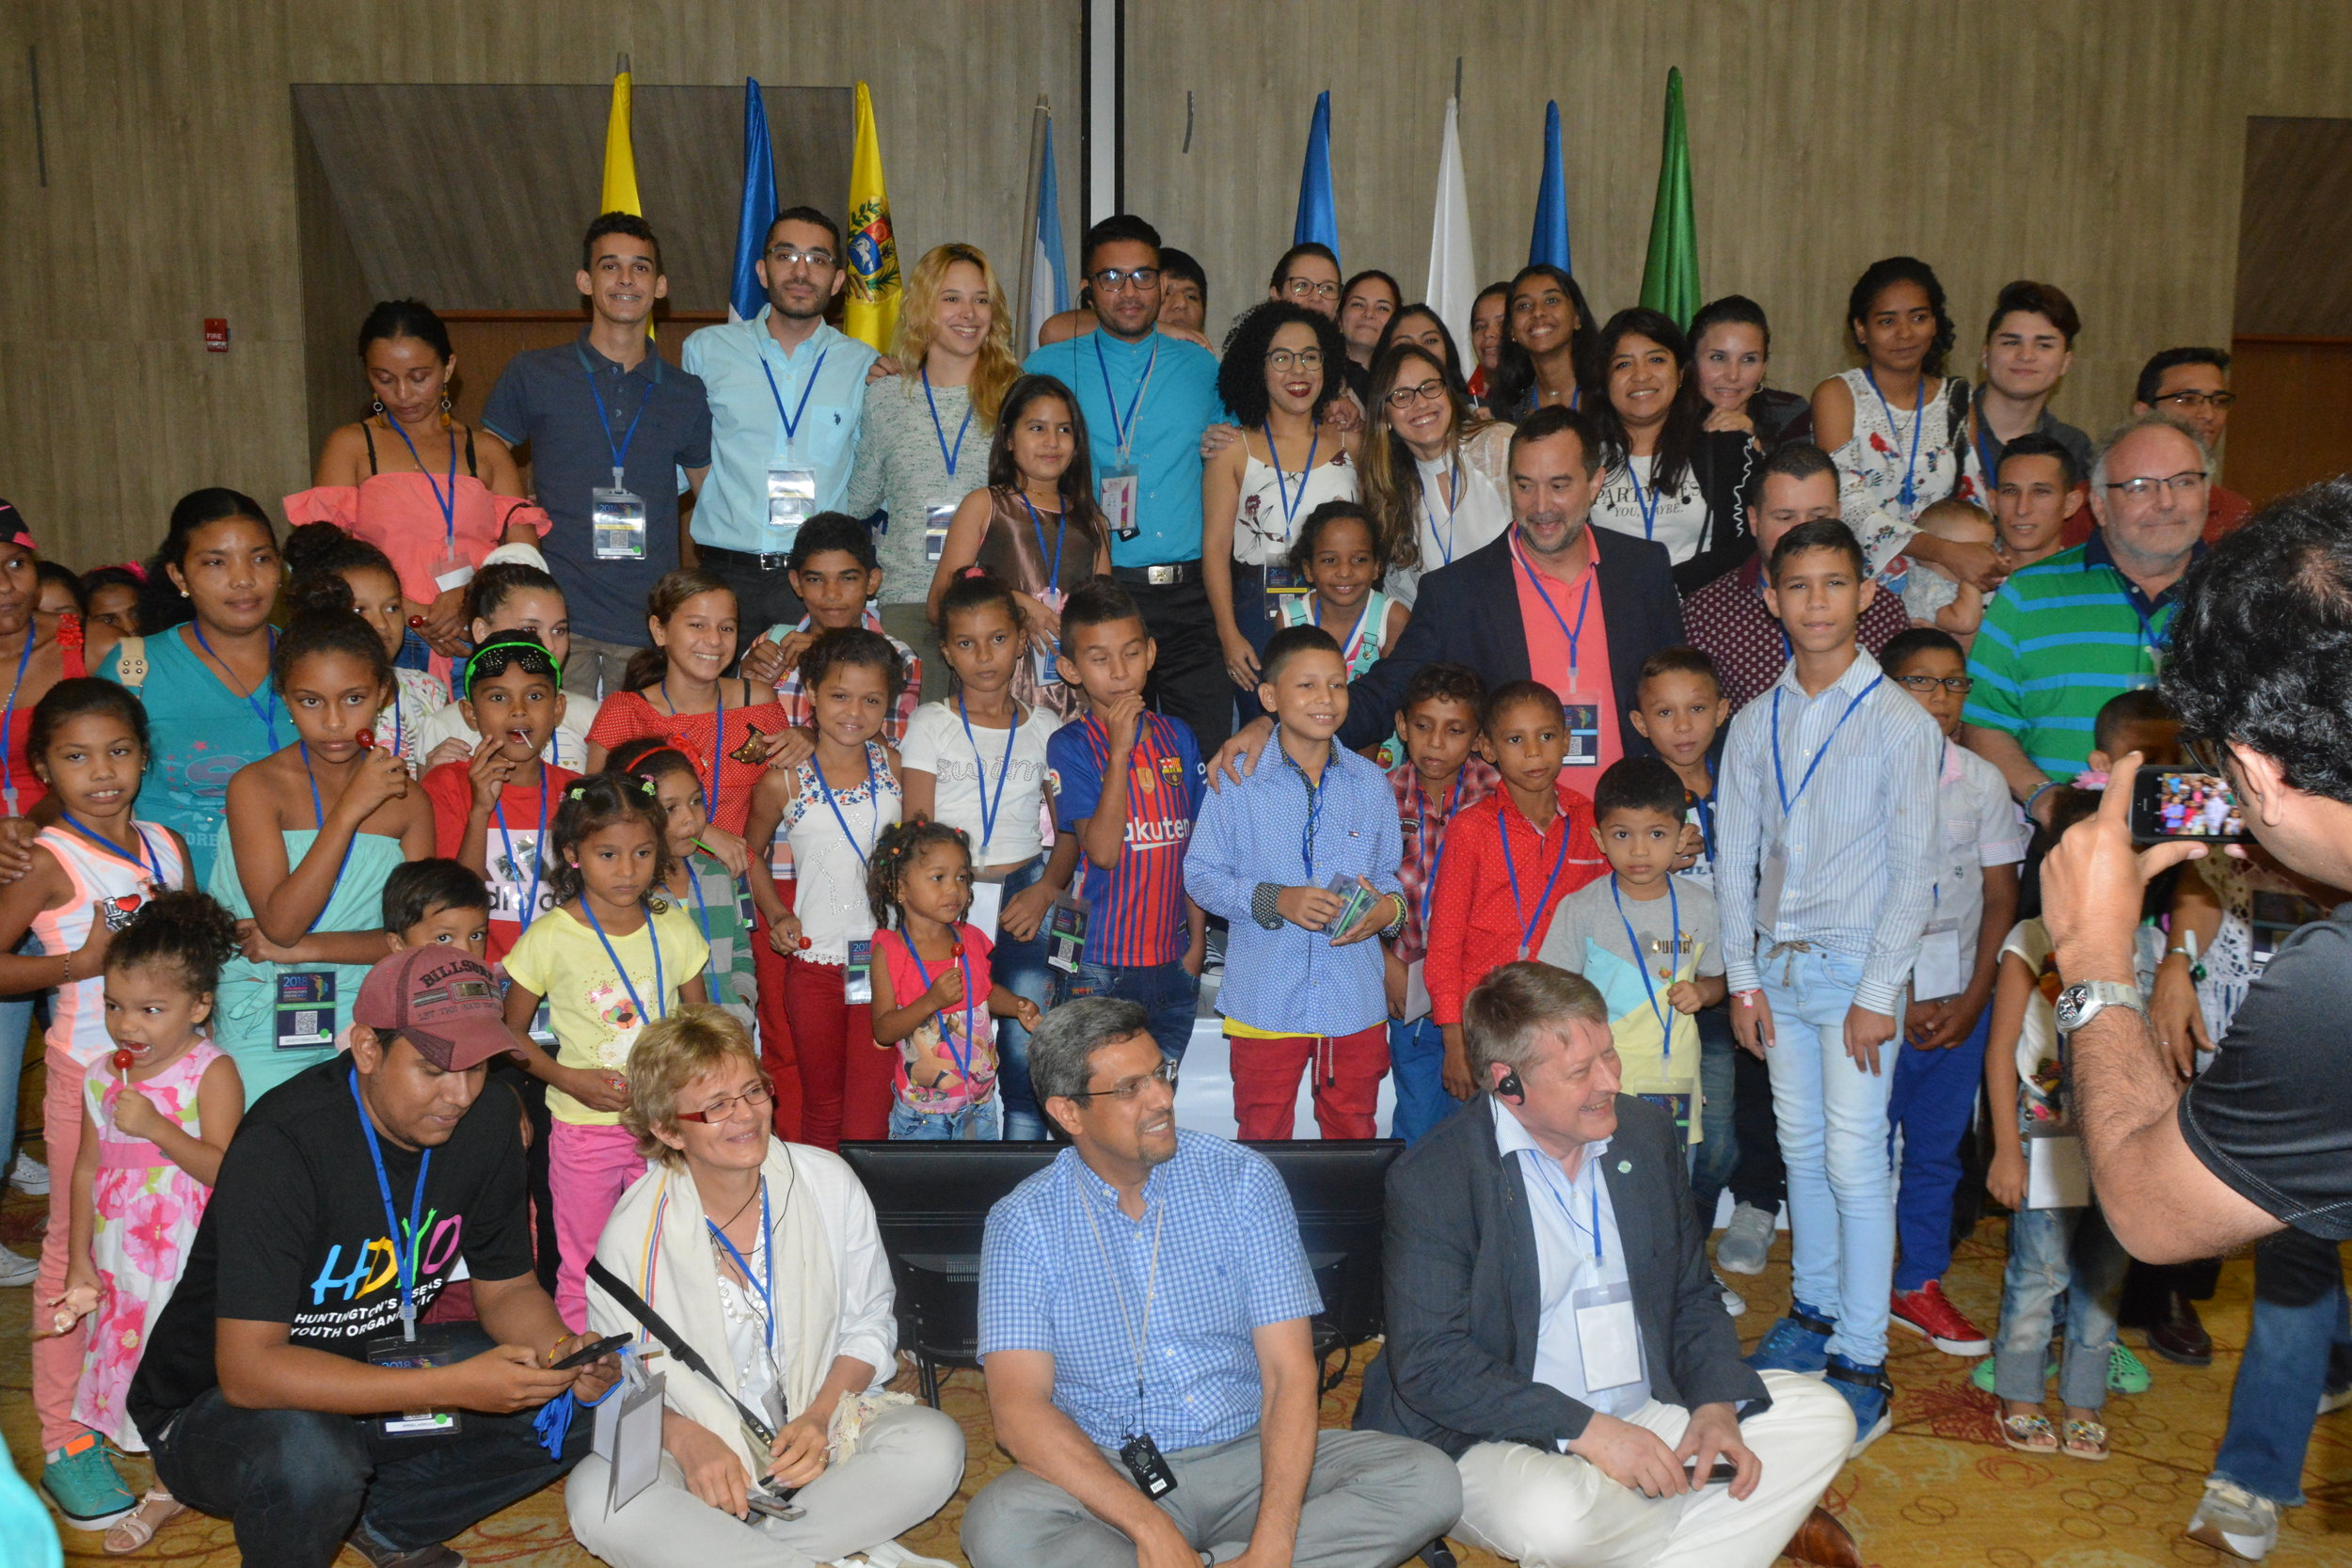 The moment when the kids of Project Abrazos met the scientists and clinicians